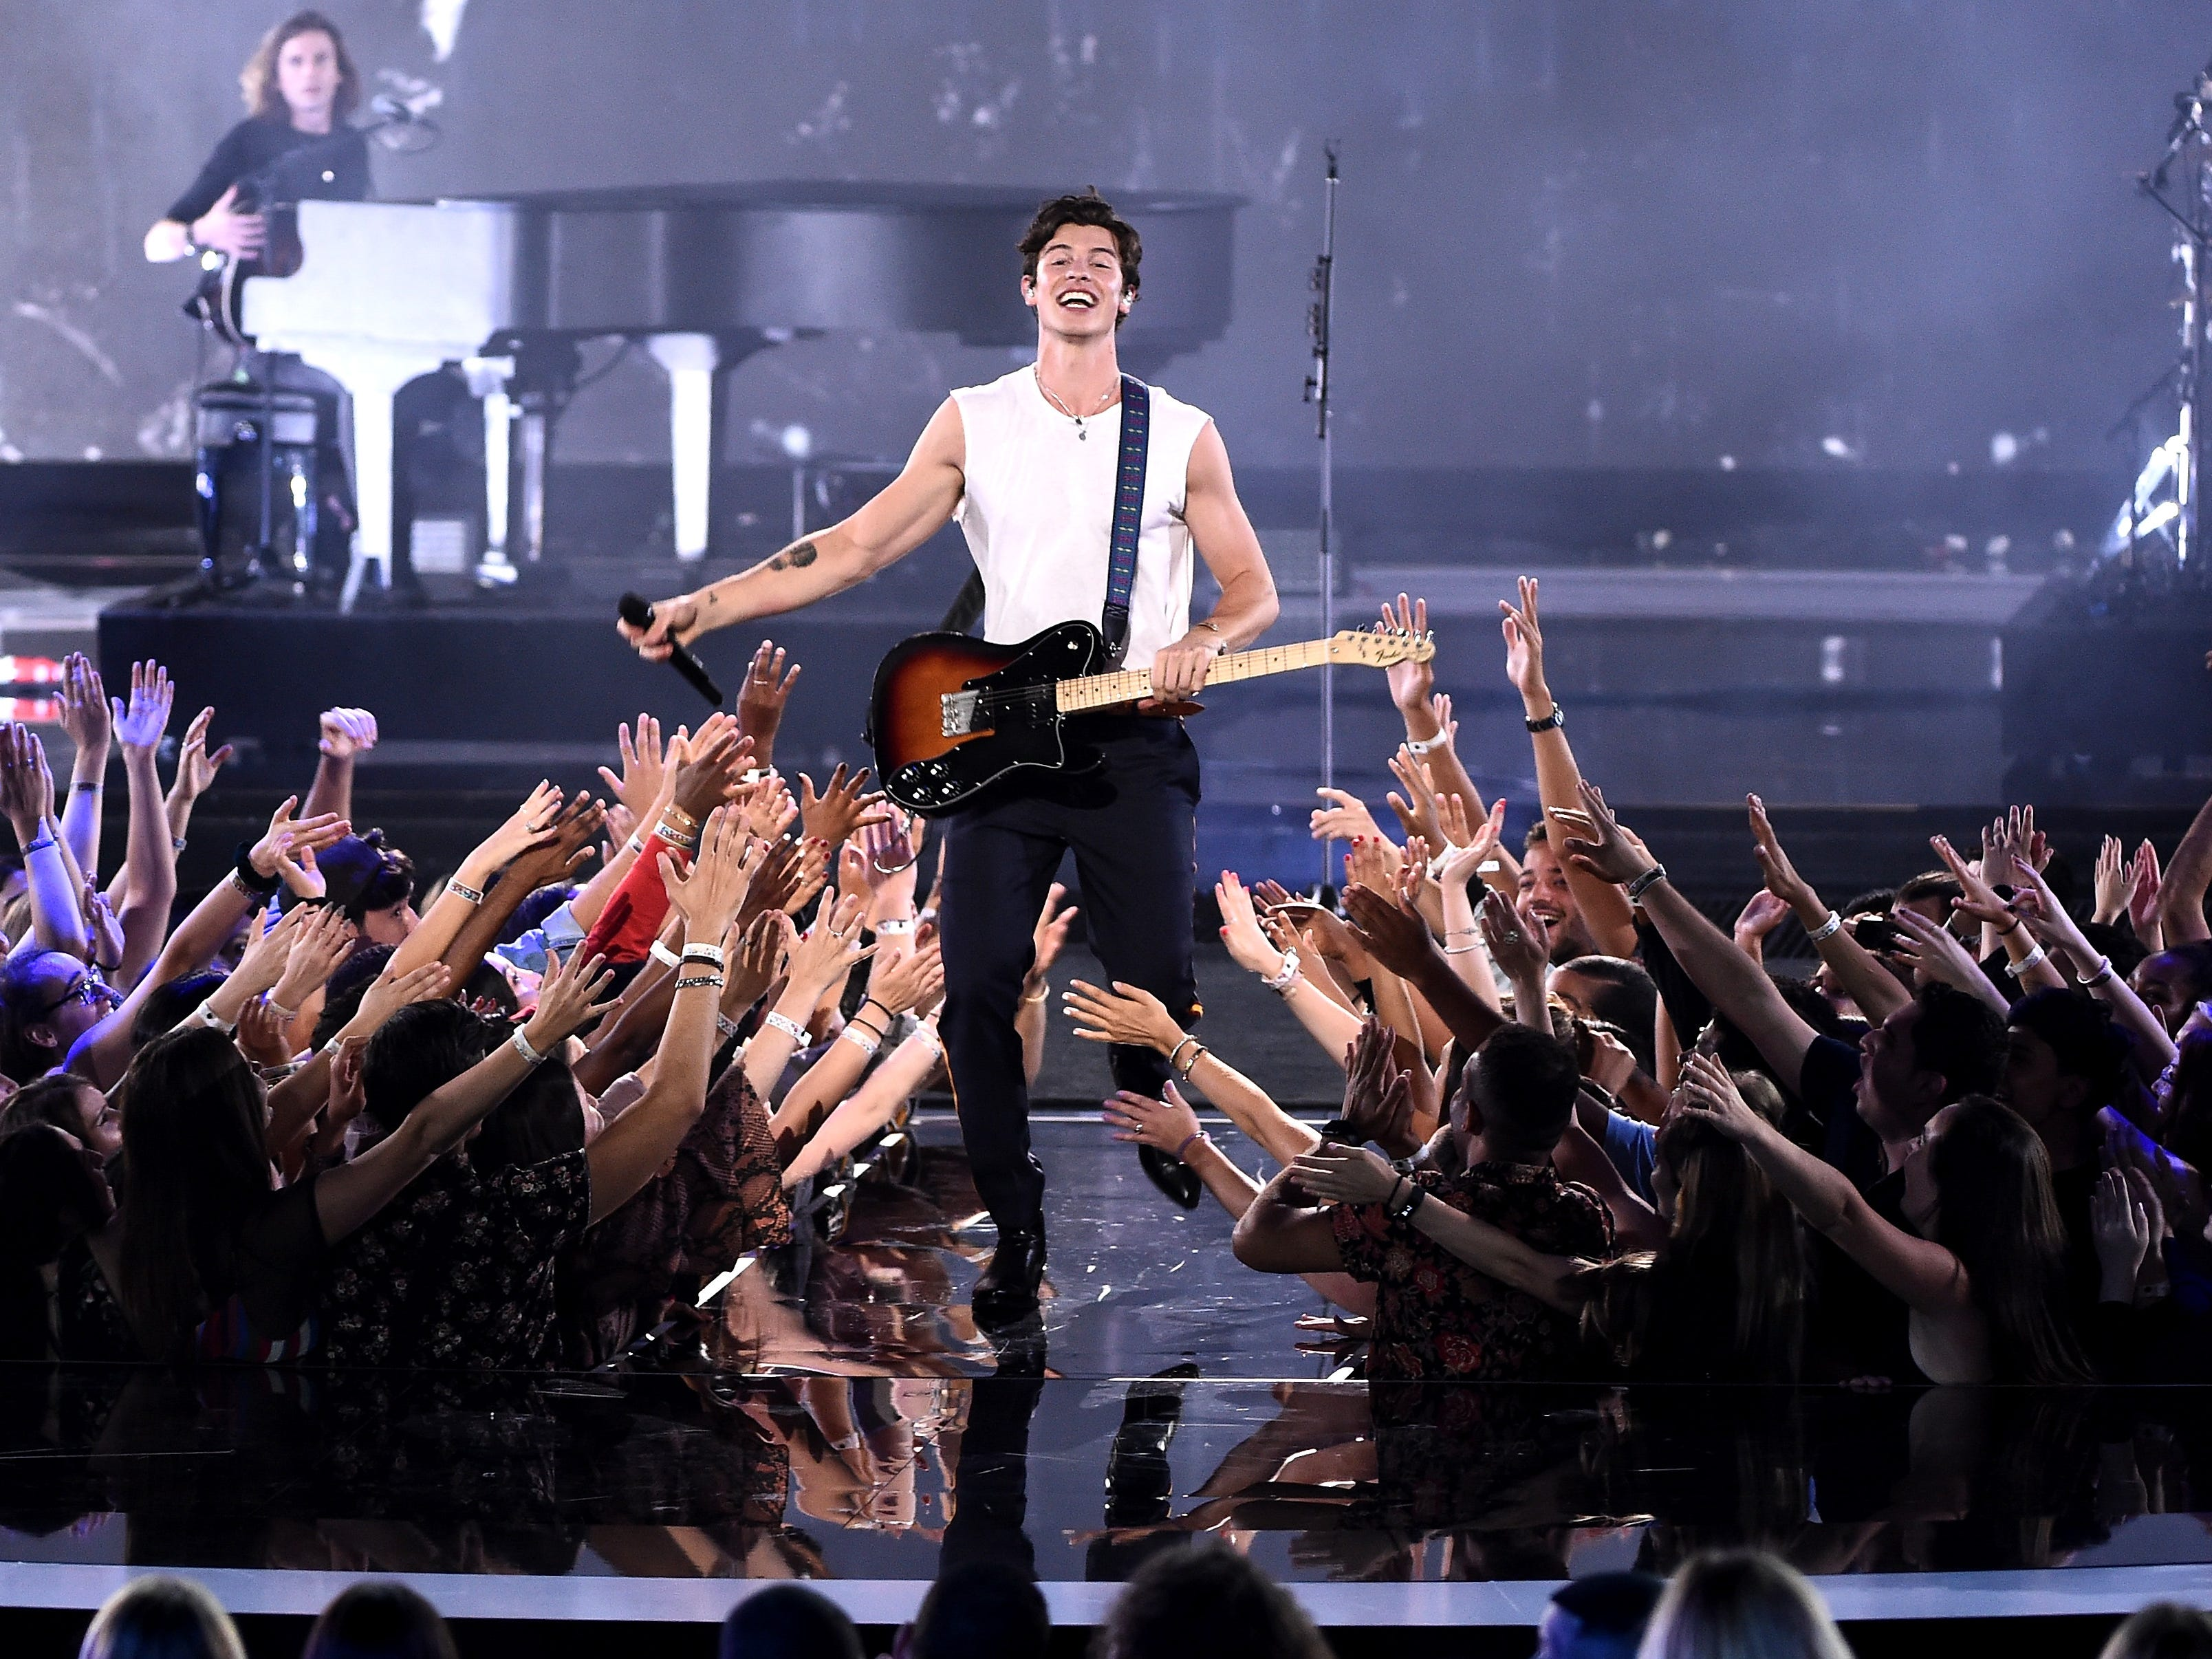 NEW YORK, NY - AUGUST 20:  Shawn Mendes performs onstage during the 2018 MTV Video Music Awards at Radio City Music Hall on August 20, 2018 in New York City.  (Photo by Michael Loccisano/Getty Images for MTV) ORG XMIT: 775210297 ORIG FILE ID: 1020304034